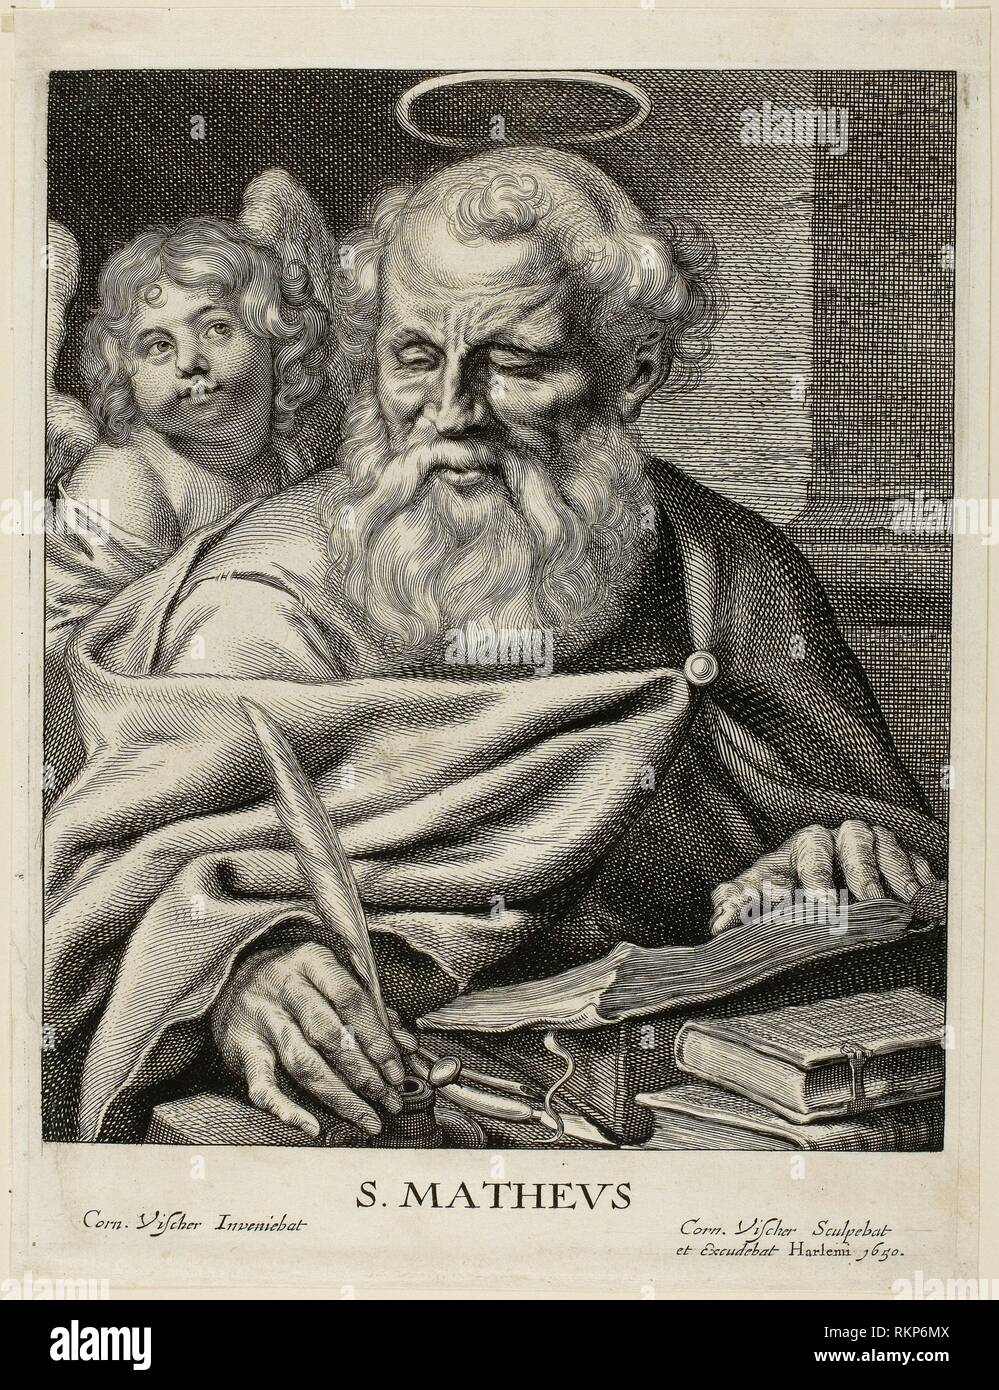 Saint Matthew - Cornelis Visscher Dutch, c. 1629-1658 - Artist: Cornelis Visscher, Origin: Holland, Date: 1649-1658, Medium: Engraving on ivory Stock Photo